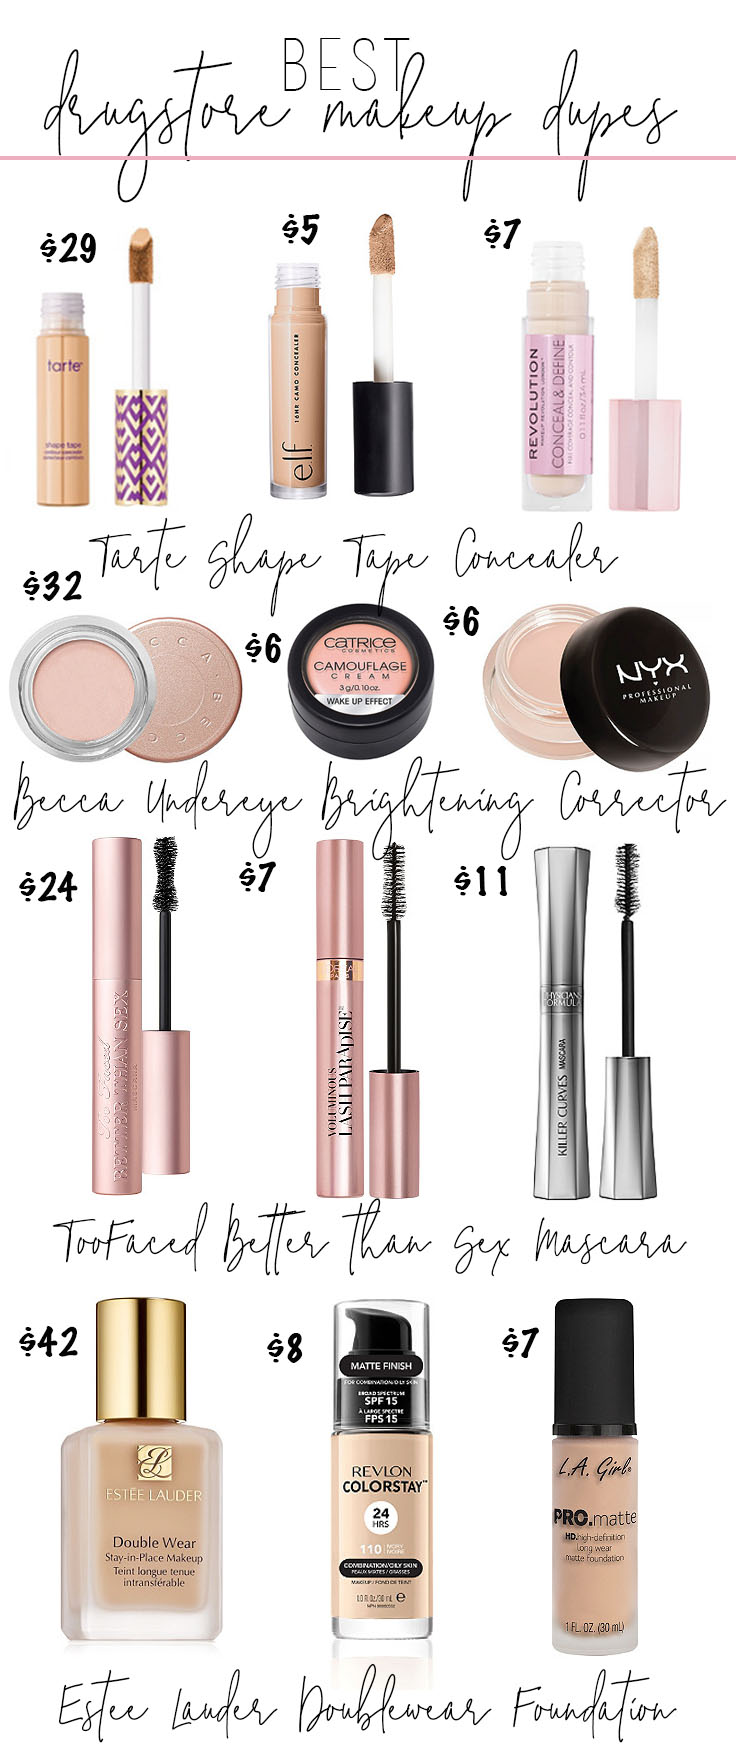 Best Drugstore Makeup Dupes 2019